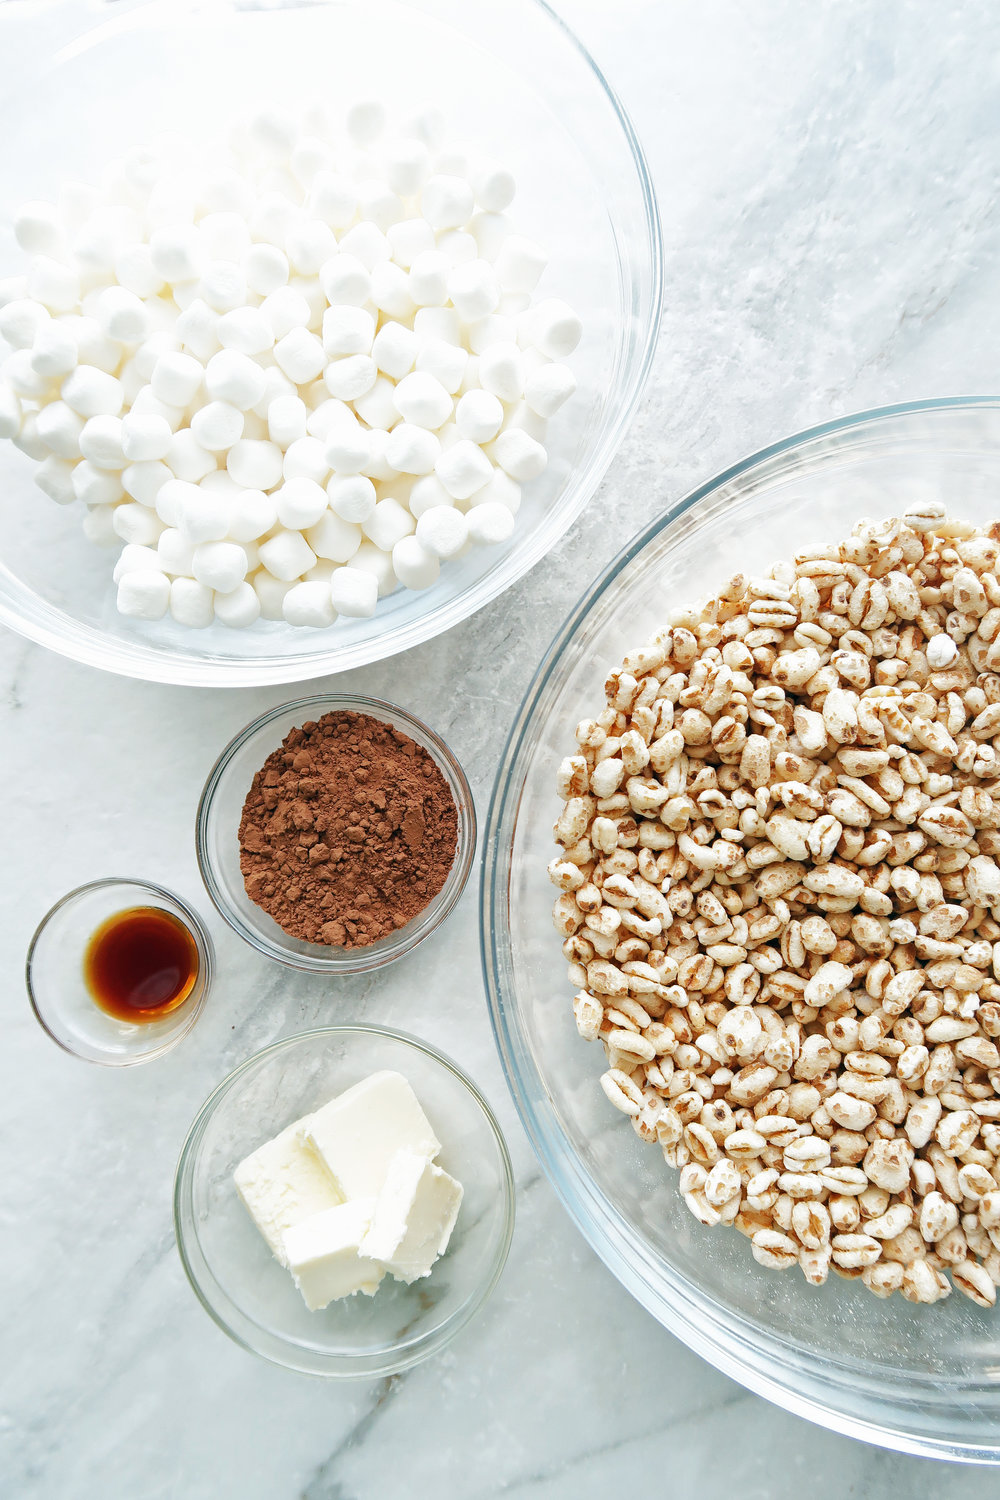 Bowls of puffed wheat, marshmallows, cocoa powder, butter, and vanilla.